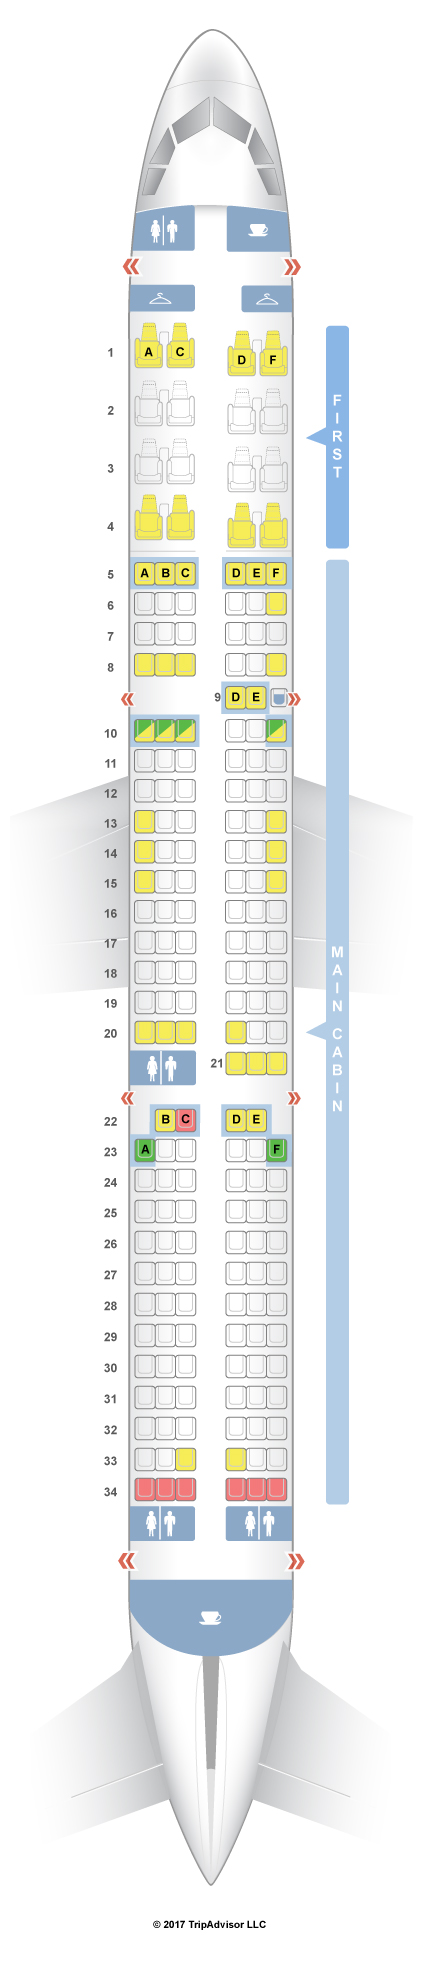 SeatGuru Seat Map American Airlines Airbus A321 321 V3 - Us Airways A321 Seat Map